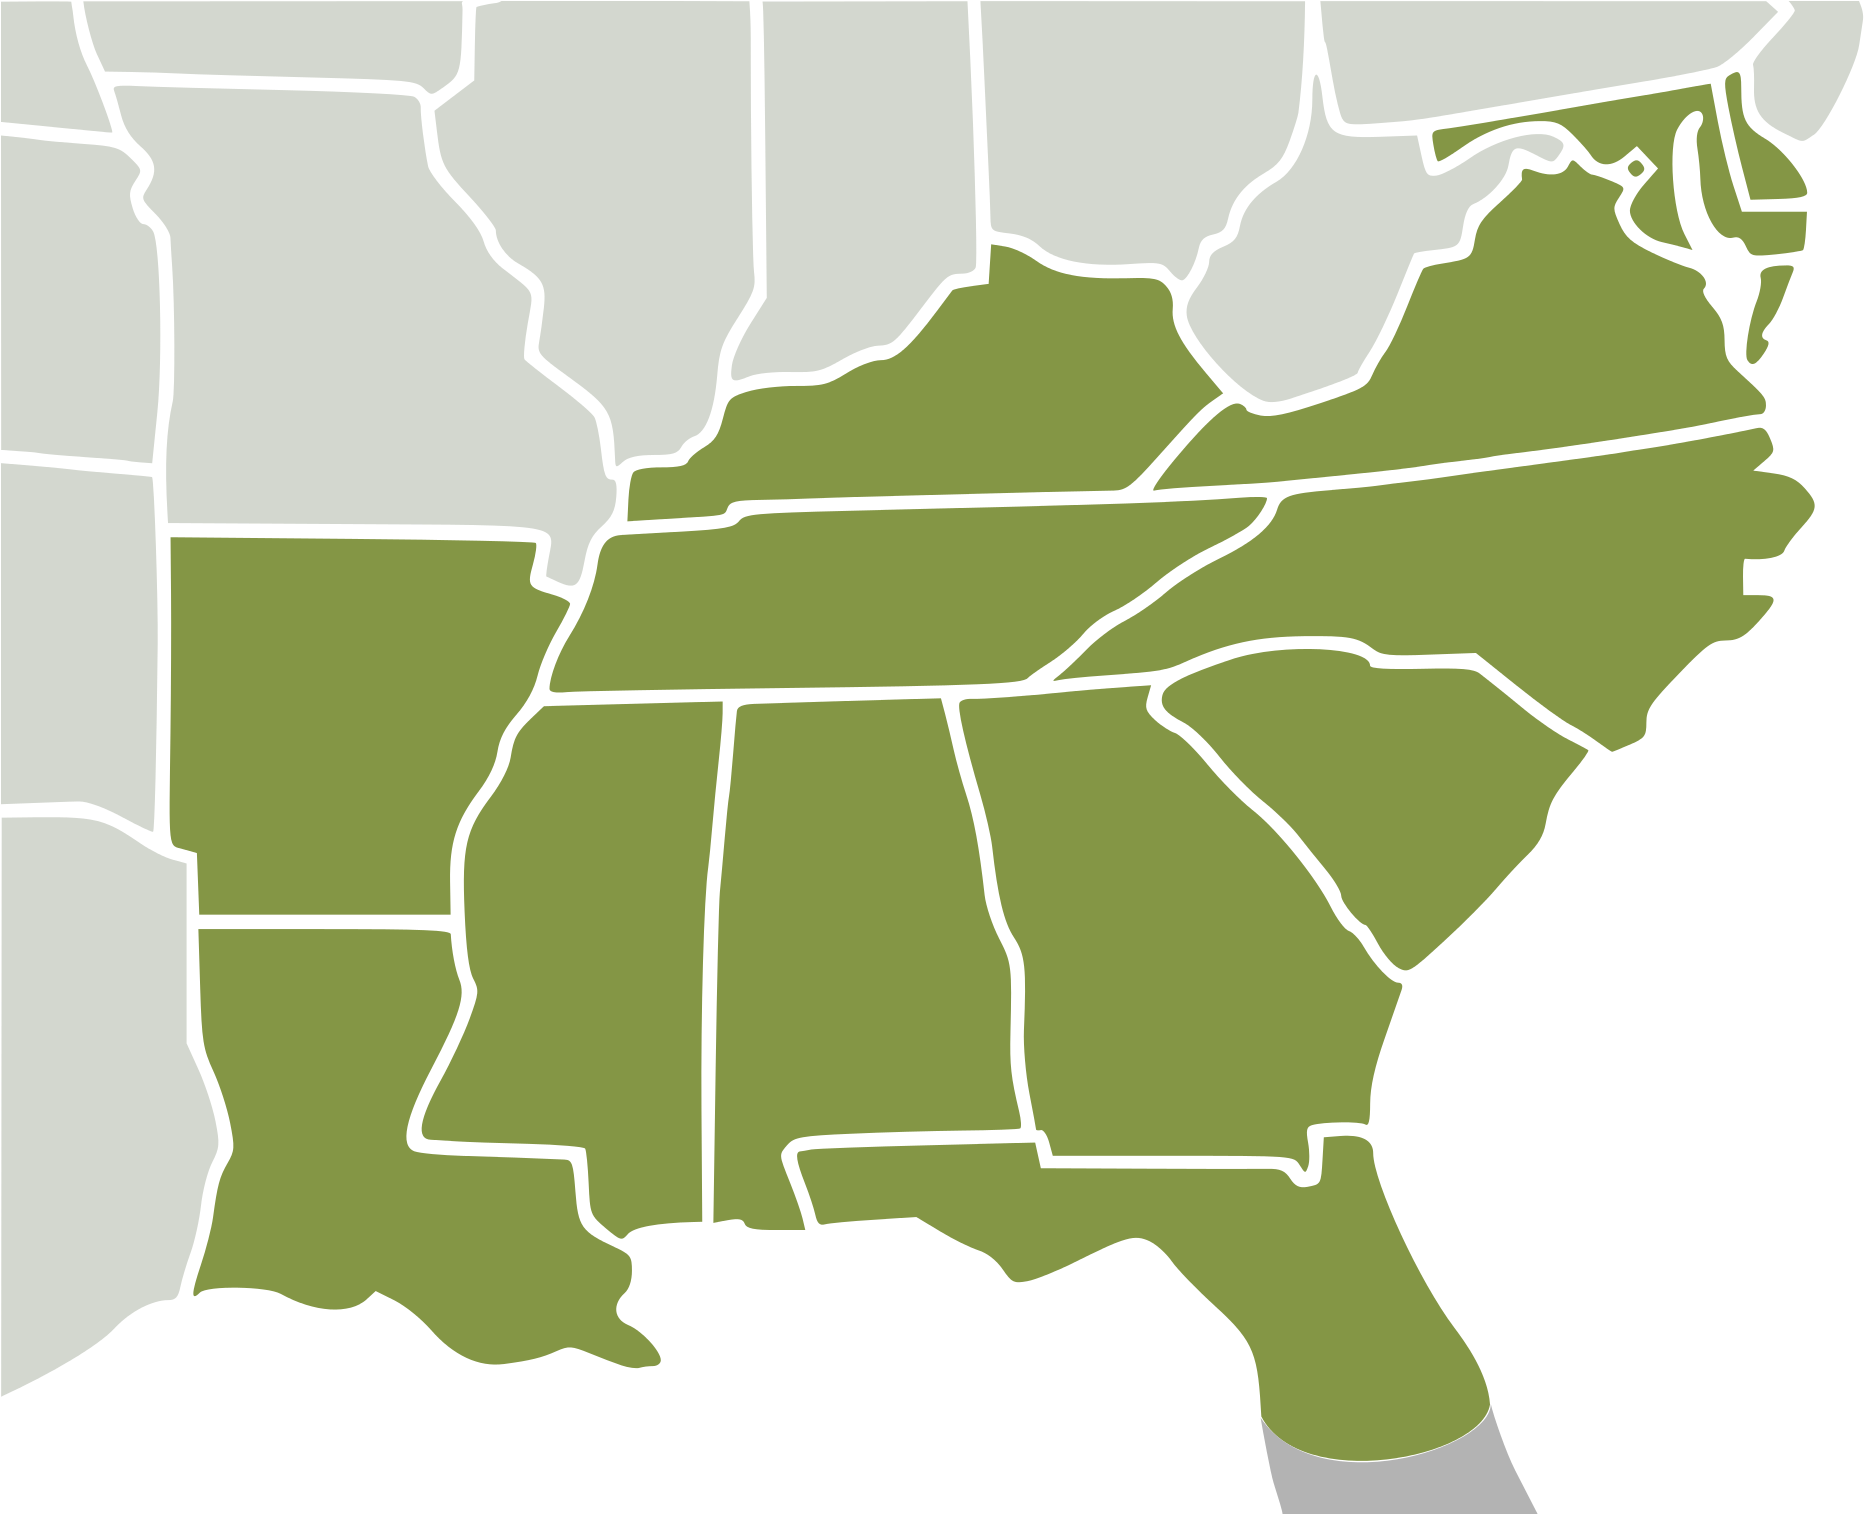 Svg Us Map Of Southeastern States Southeast Region - Vector ...